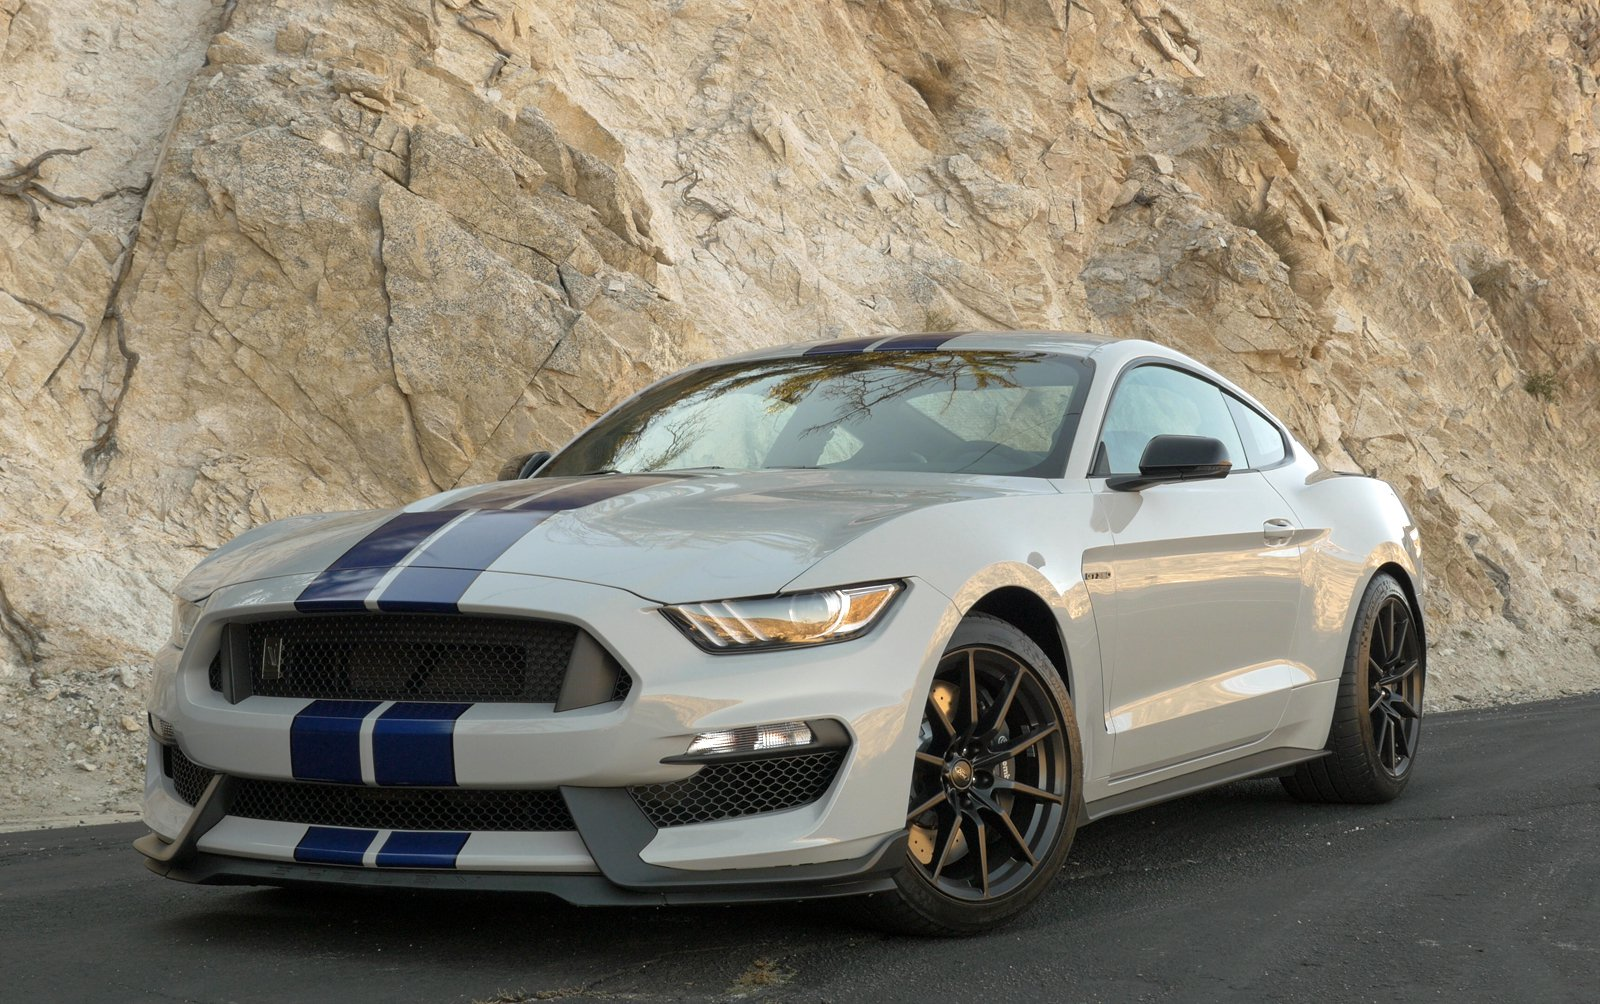 2016 ford mustang shelby gt350 car photos catalog 2018. Black Bedroom Furniture Sets. Home Design Ideas